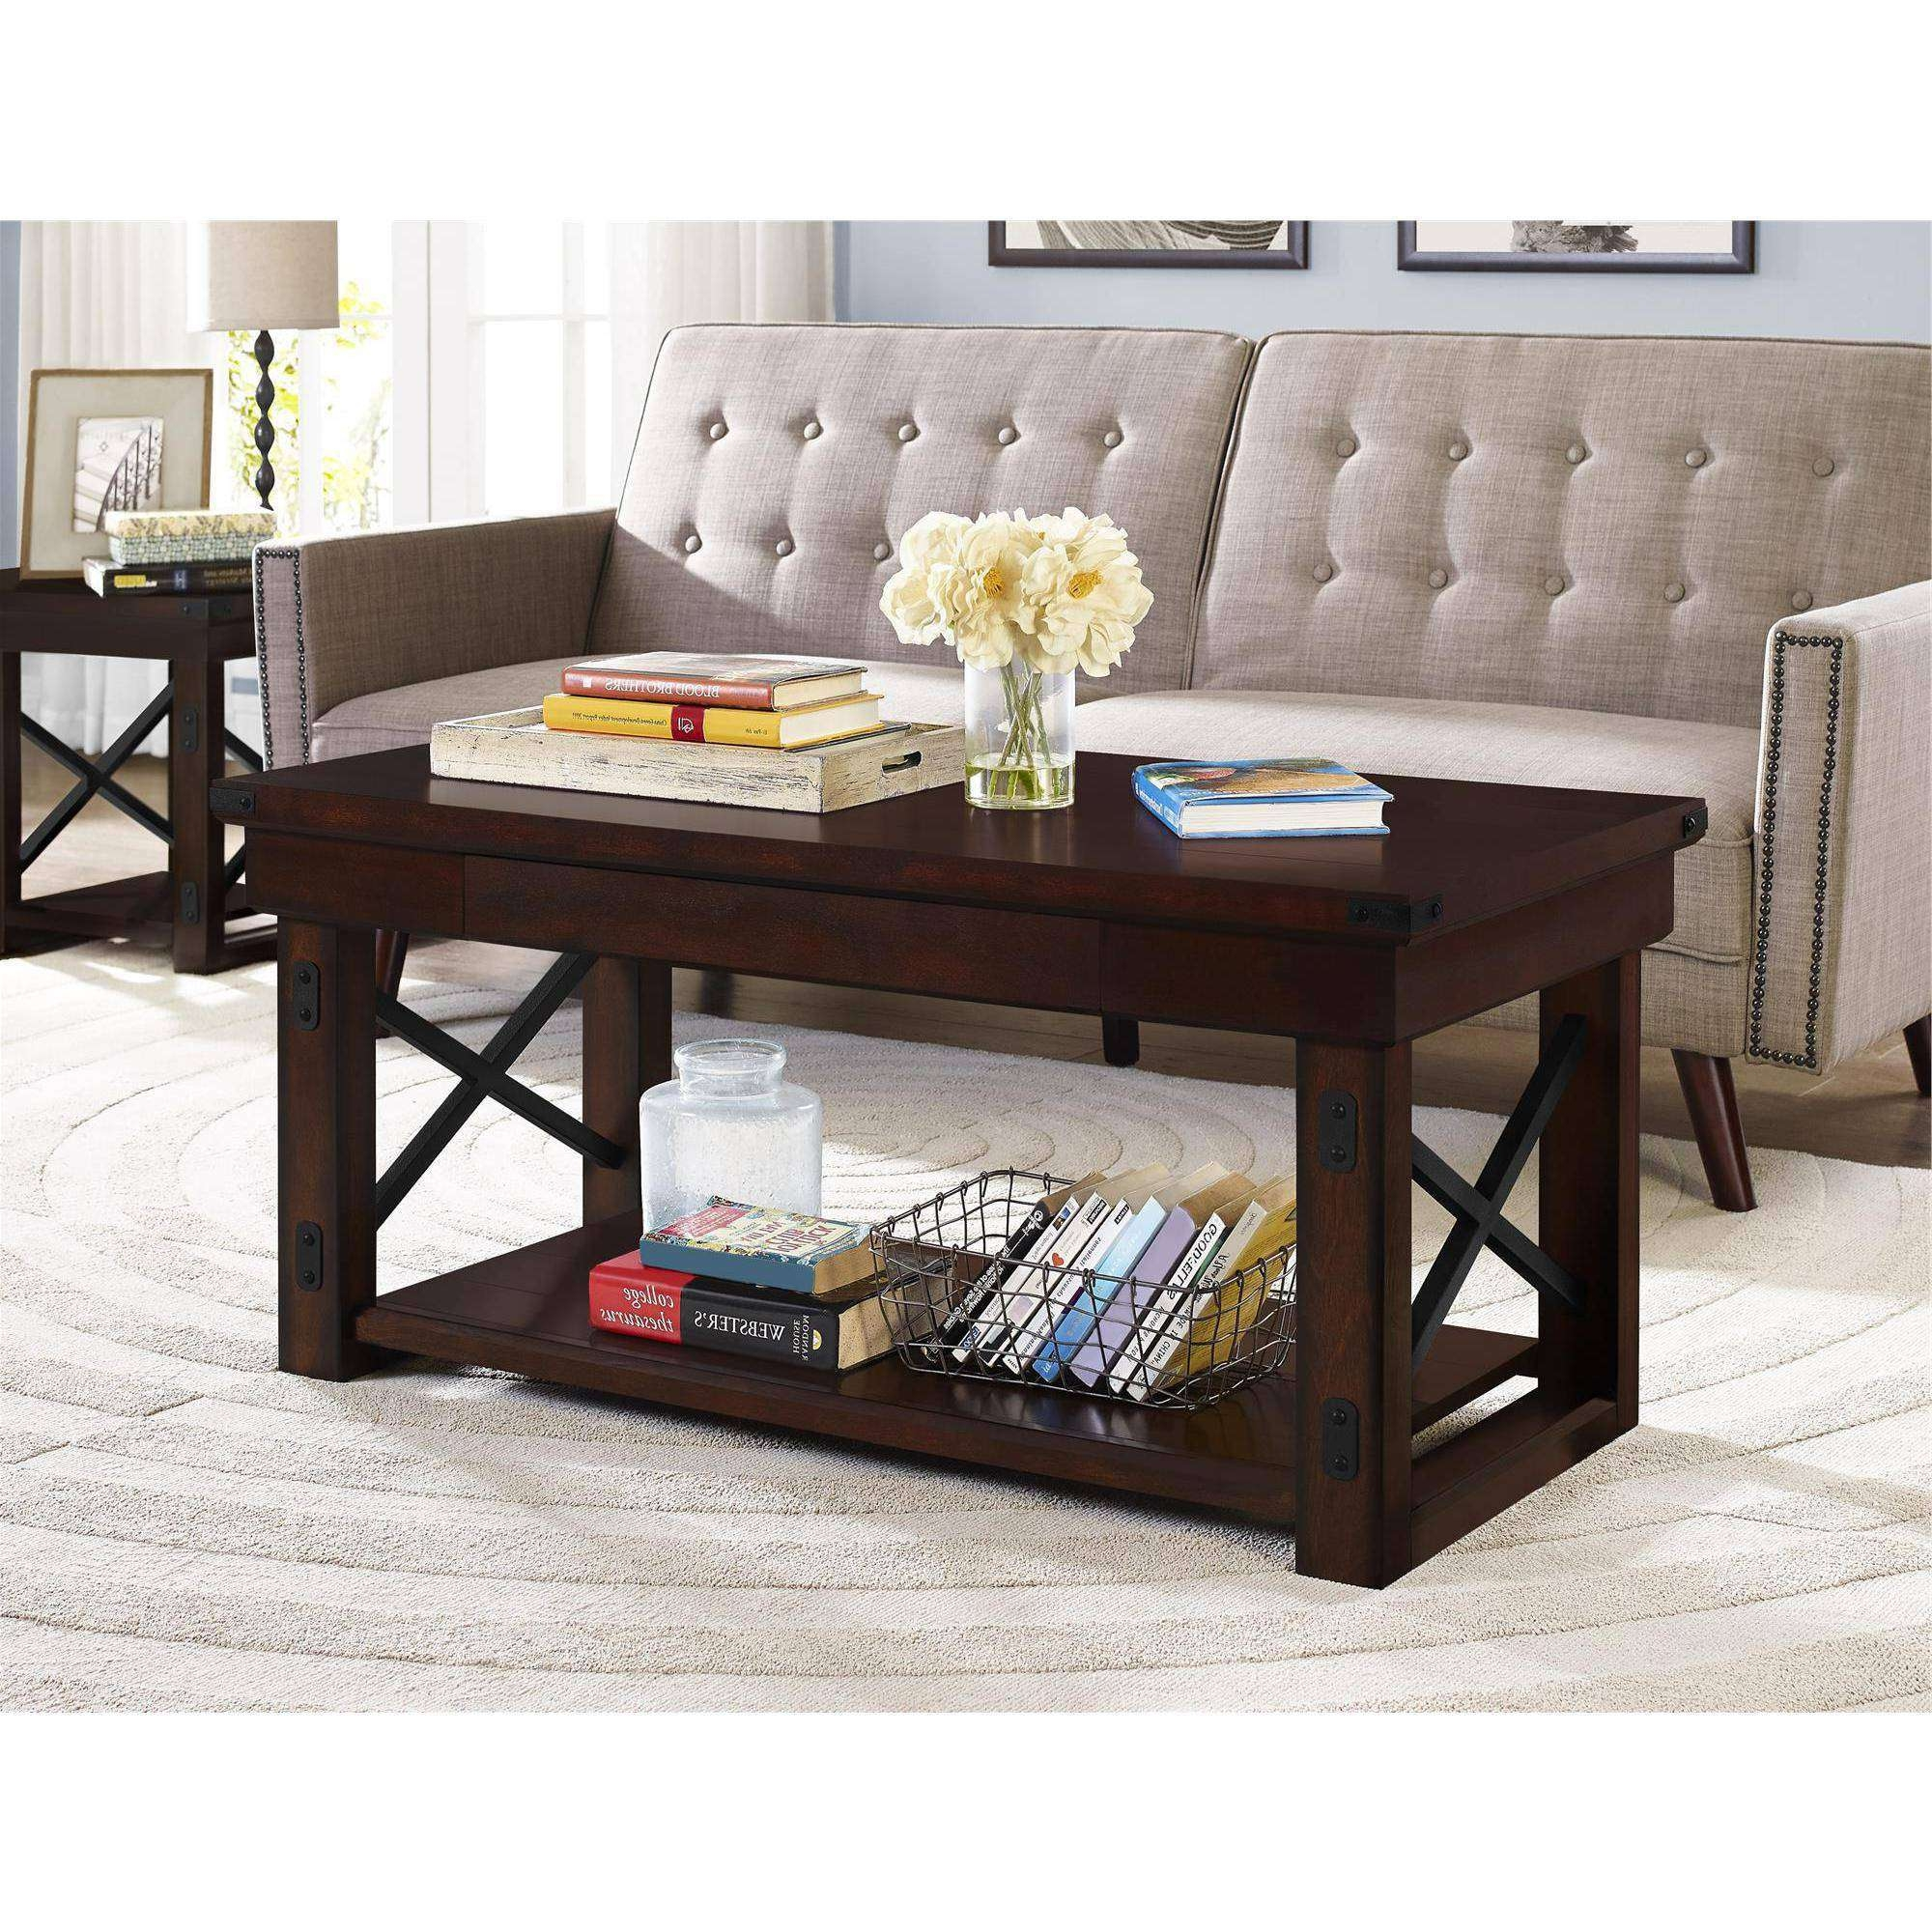 2017 Dark Oak Coffee Tables Inside Better Homes And Gardens Preston Park Coffee Table, Mahogany (View 1 of 20)